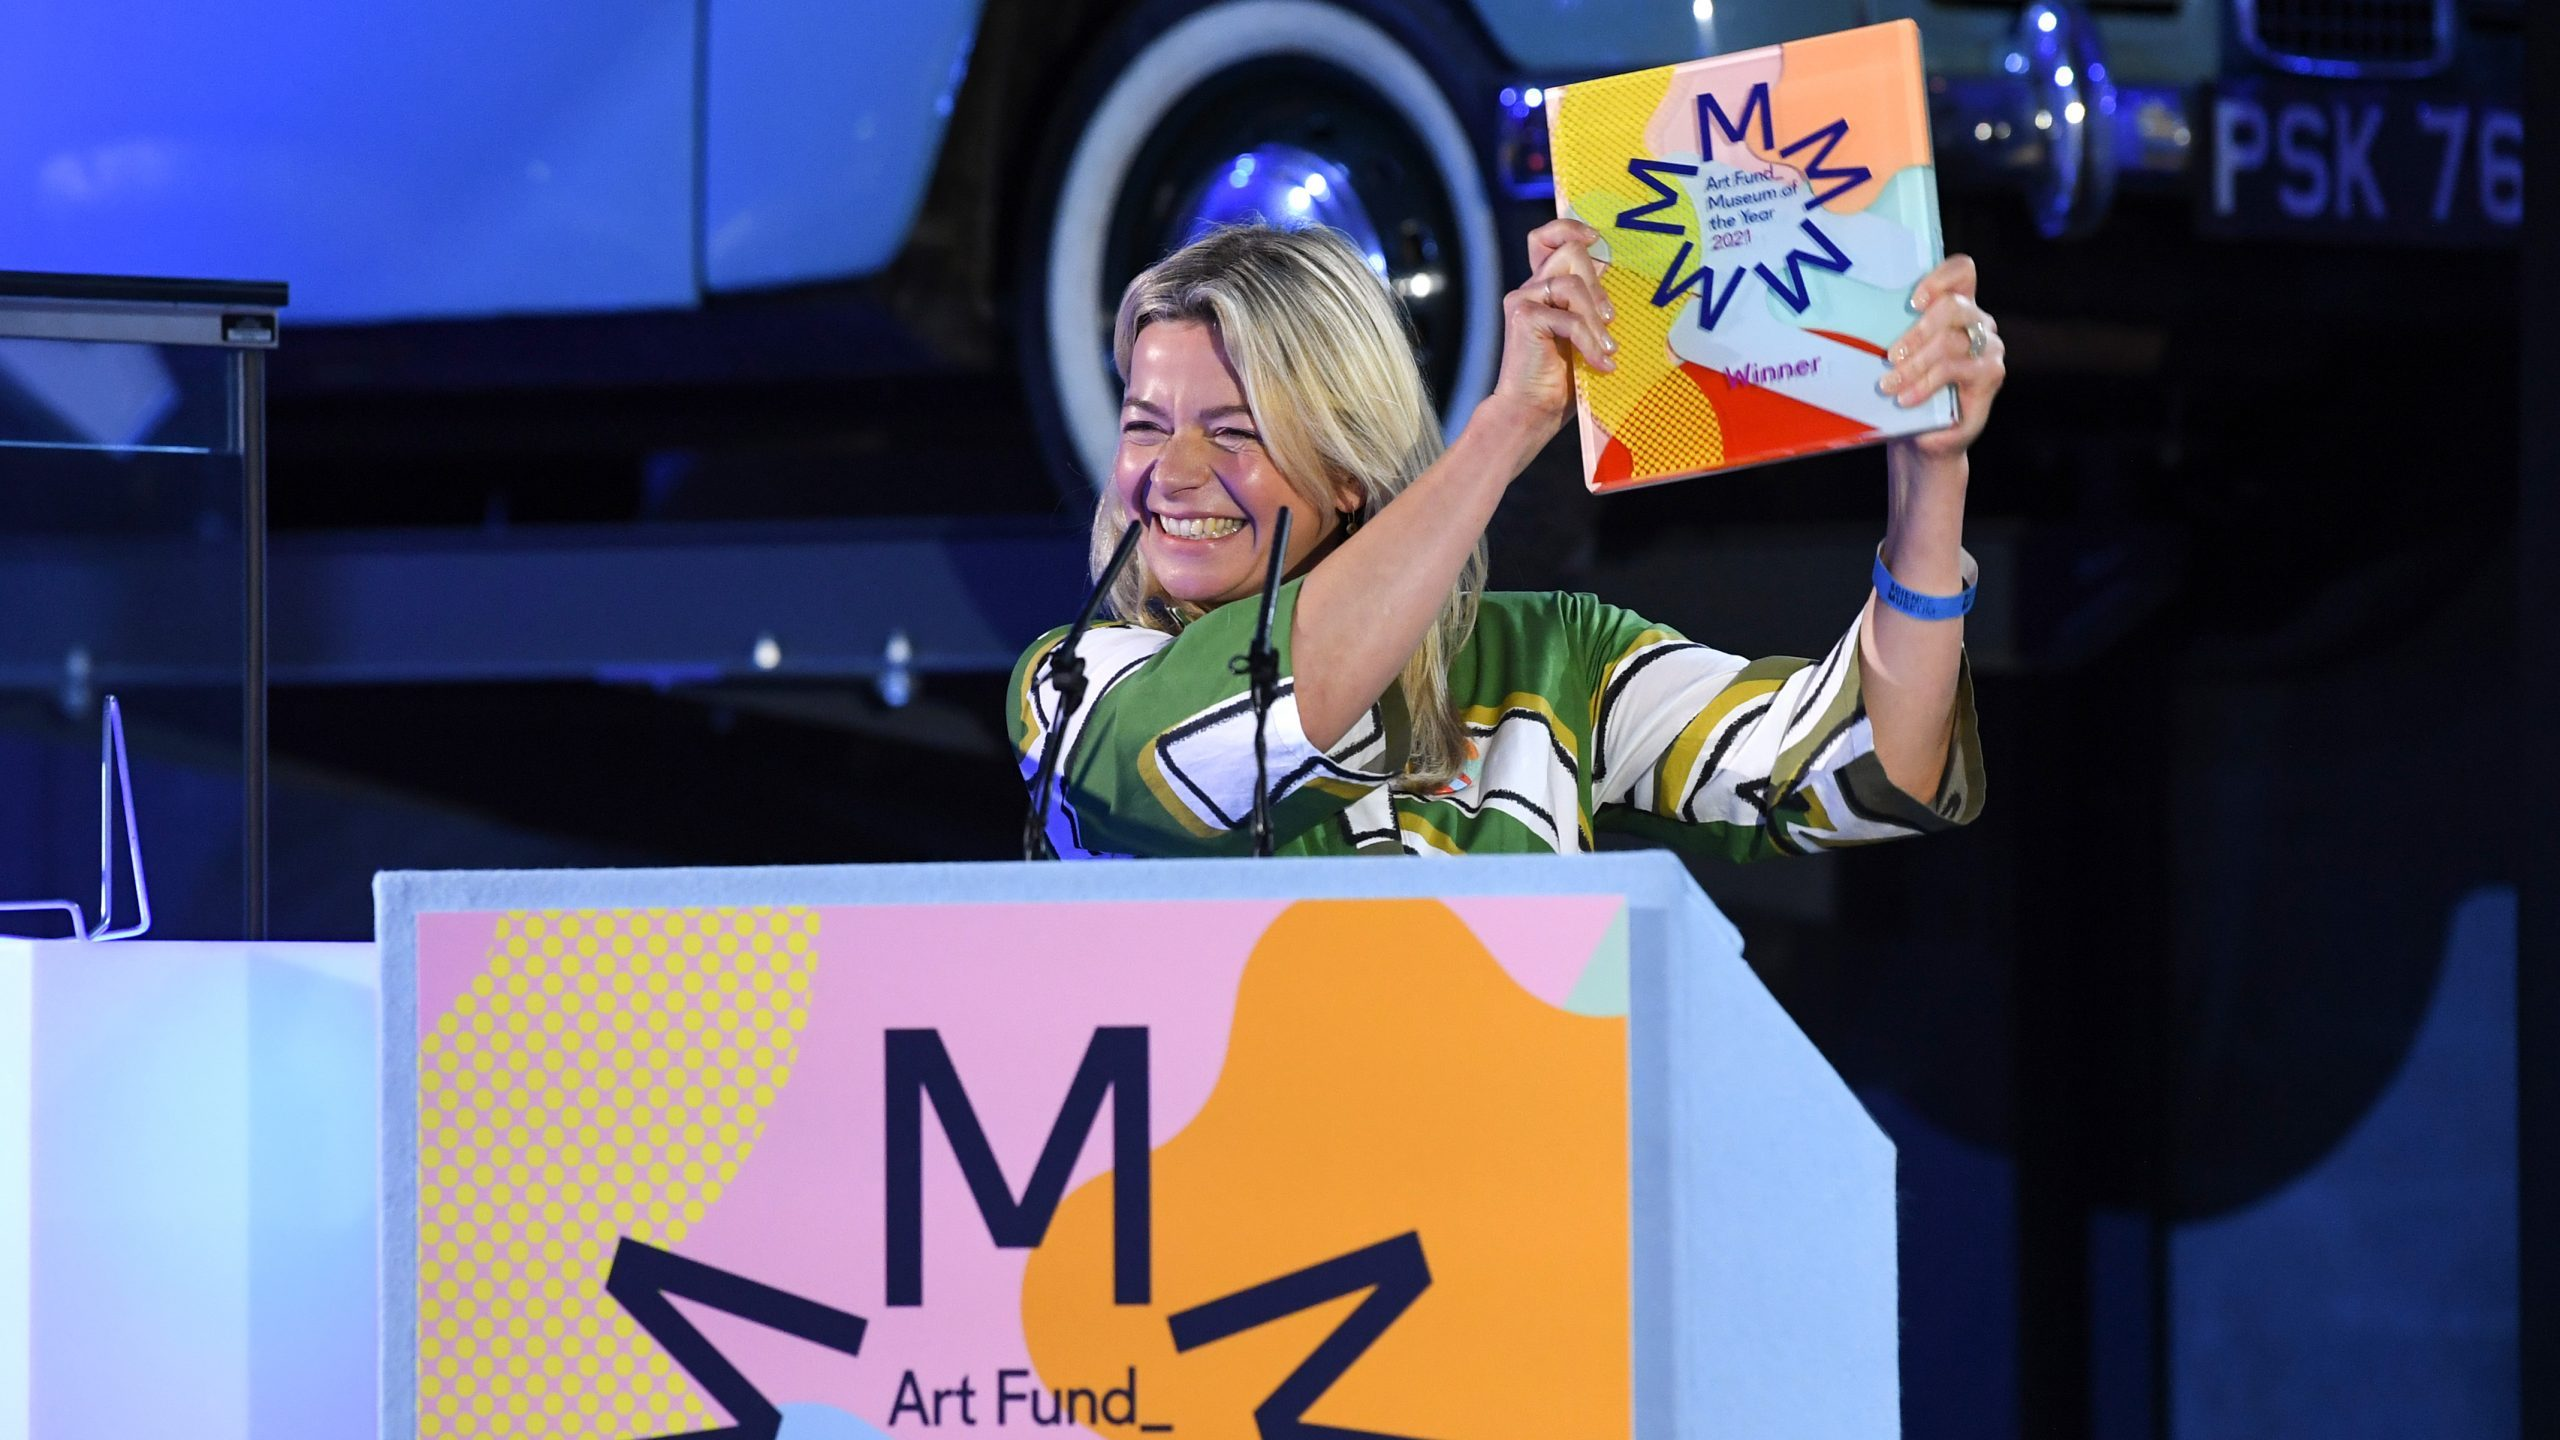 Sally Shaw, director of Firstsite, winner of Art Fund Museum of the Year 2021, at the award ceremony at the Science Museum in London